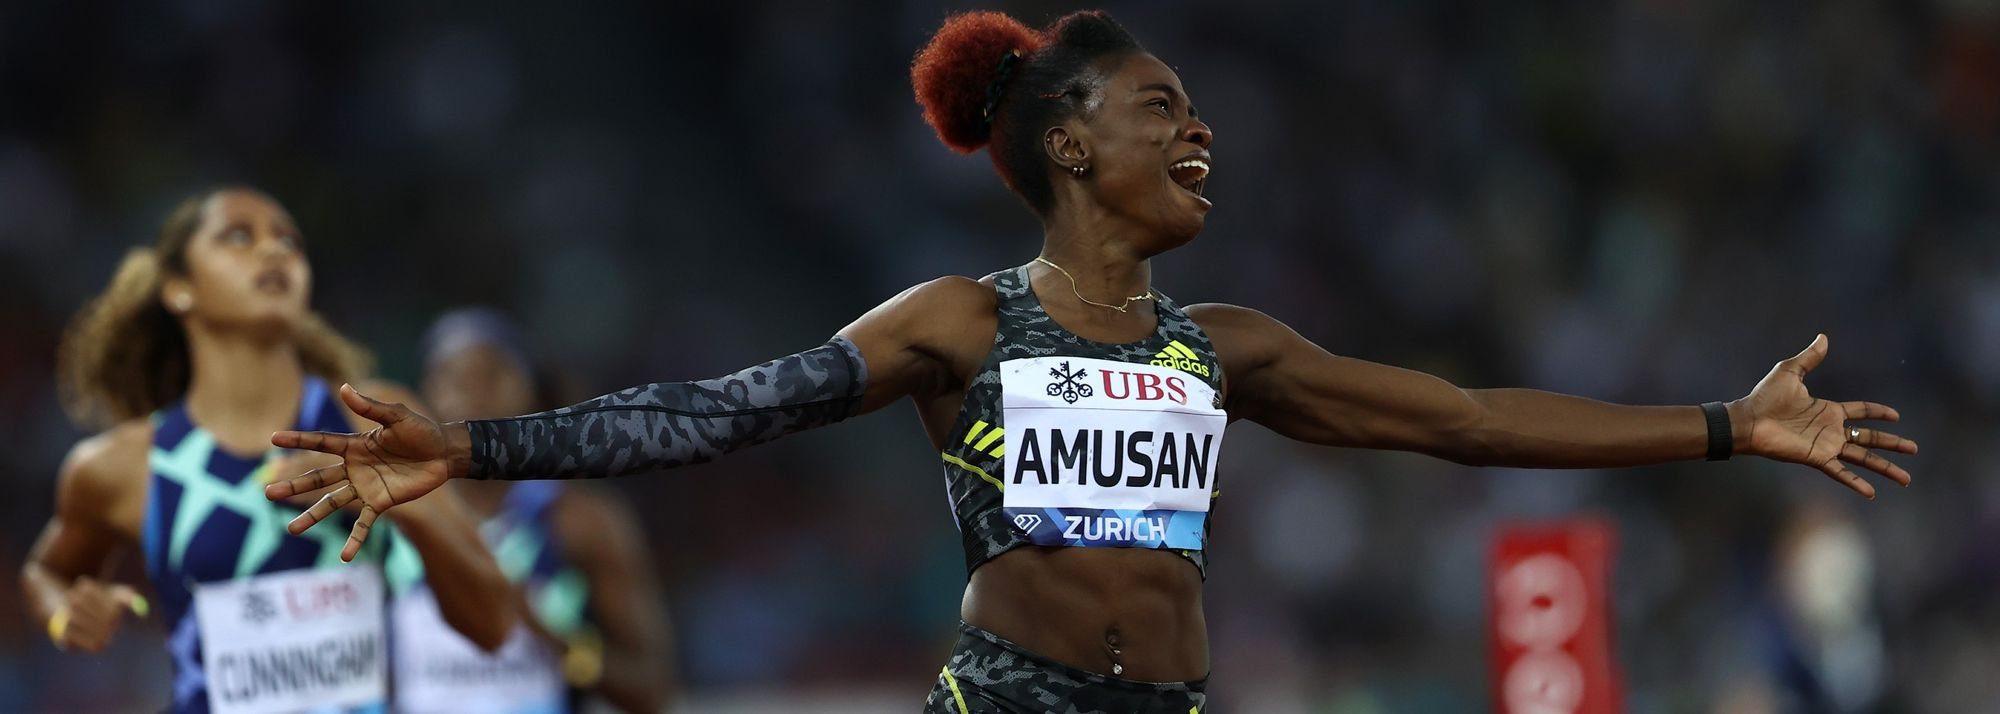 """""""I'll come back stronger."""" That was the promise Tobi Amusan made after placing fourth at the Tokyo Olympics."""